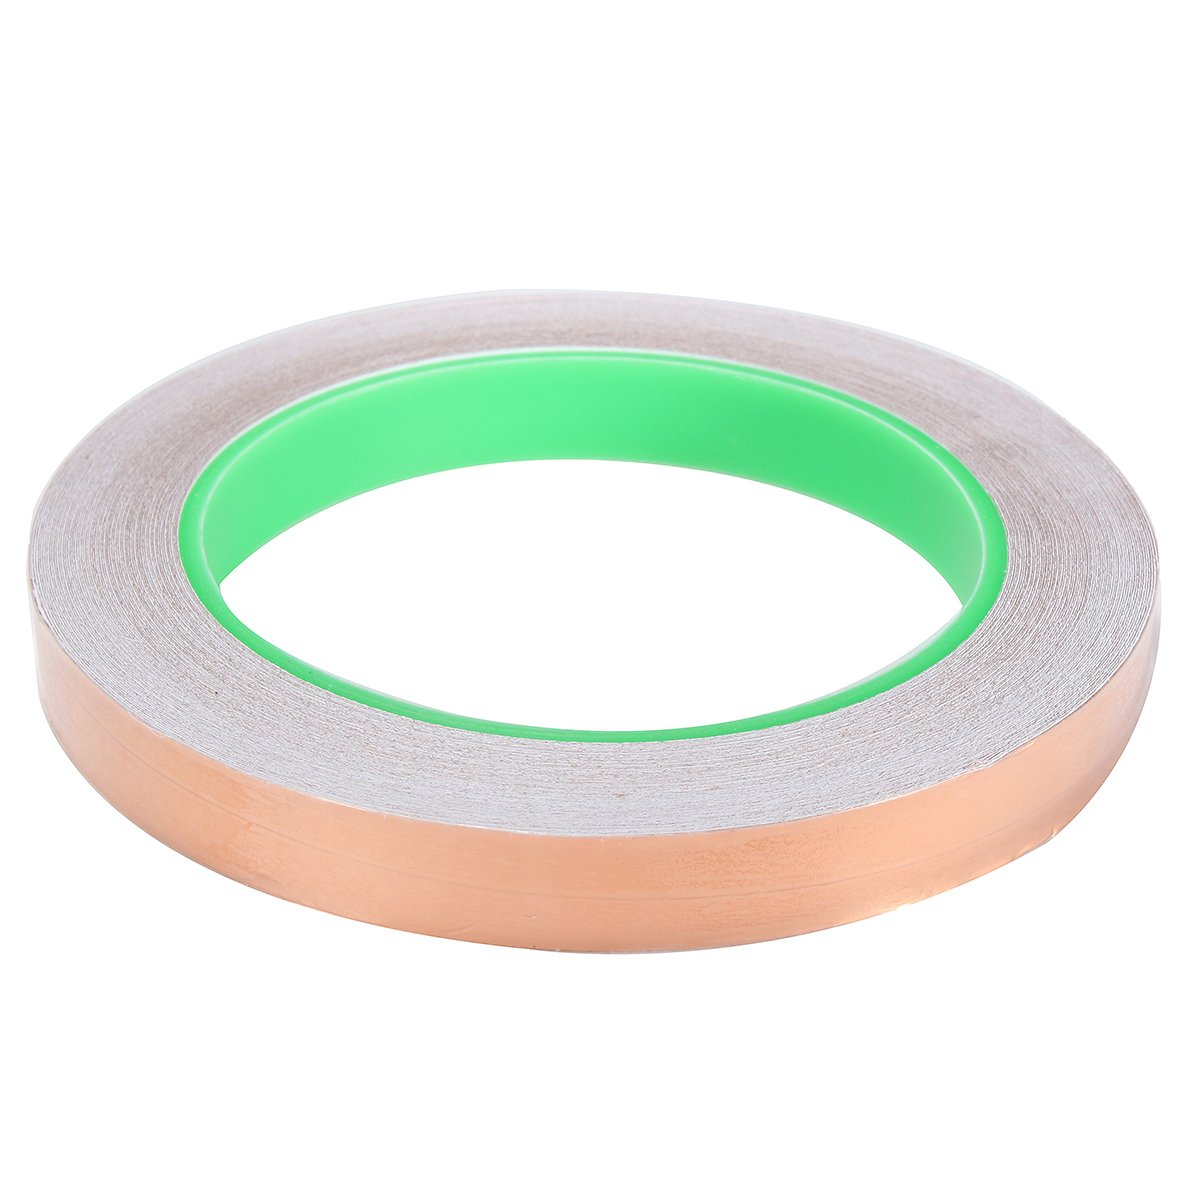 1 x Single-Sided Copper Foil Tape with Conductive Adhesive for EMI Shielding, Slug Repellent, Paper Circuits, Electrical Repairs, Grounding